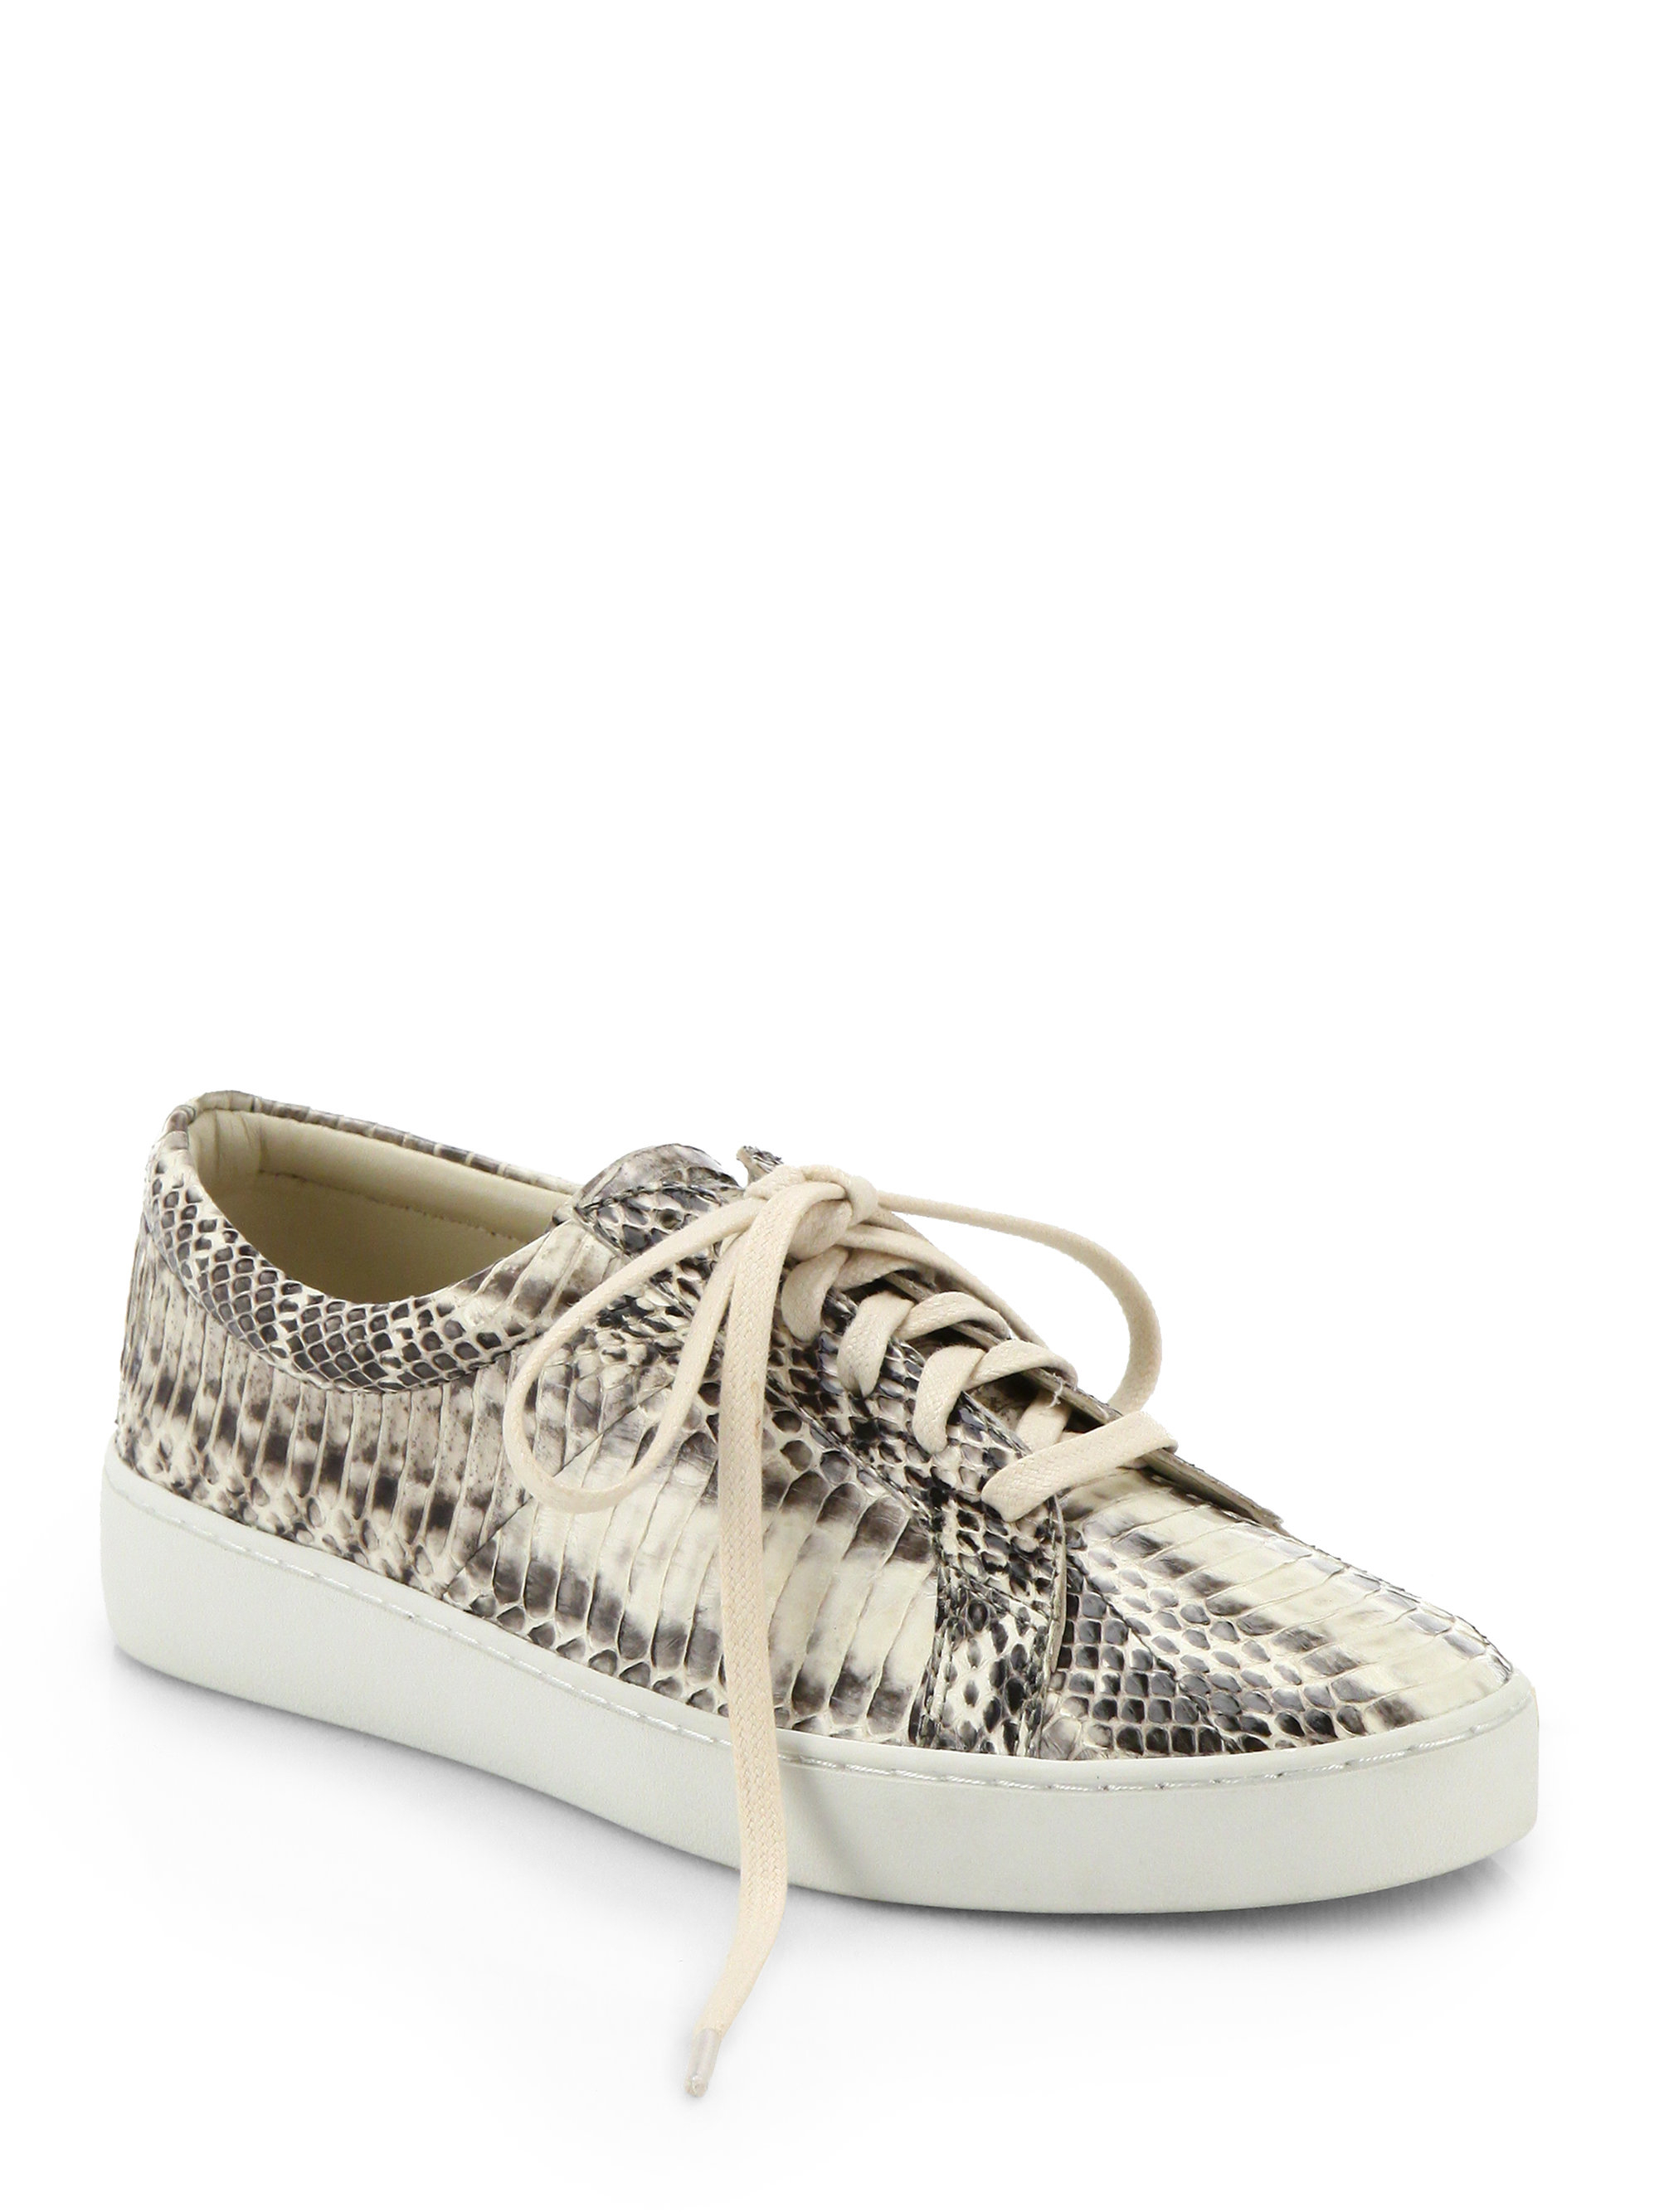 Lyst Michael Kors Valin Runway Snakeskin Lace Up